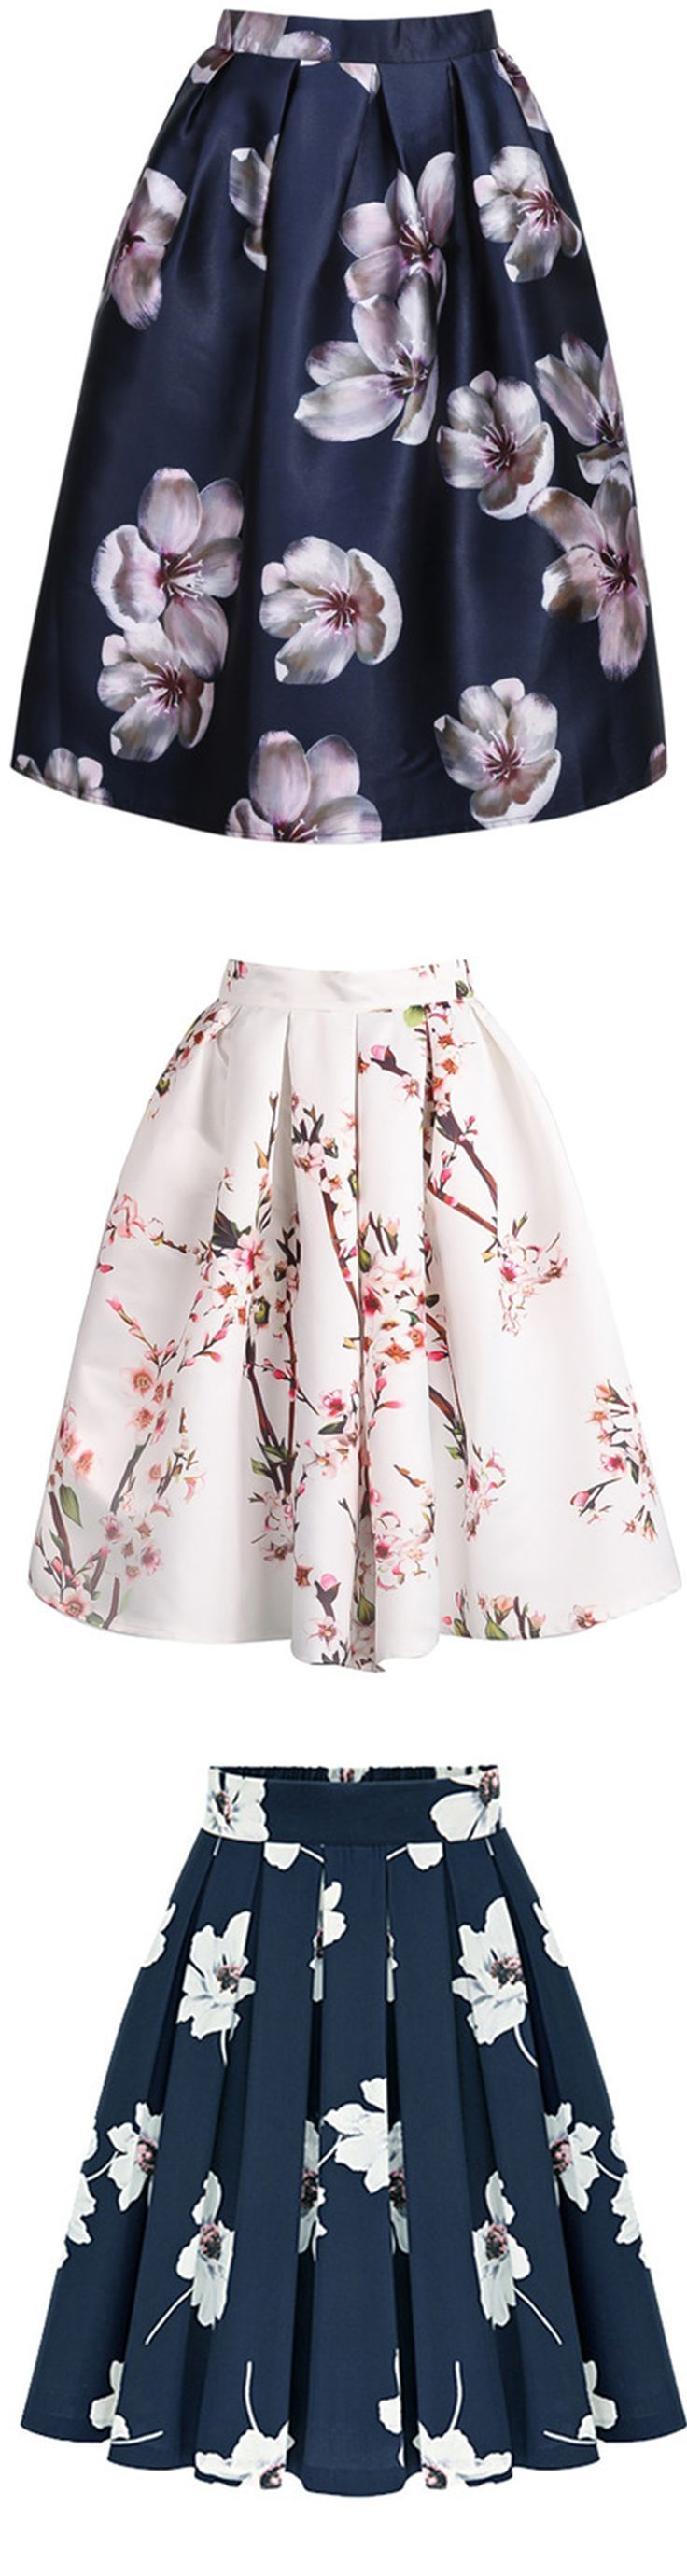 Floral Pleated Skirt - shein.com #springskirtsoutfits